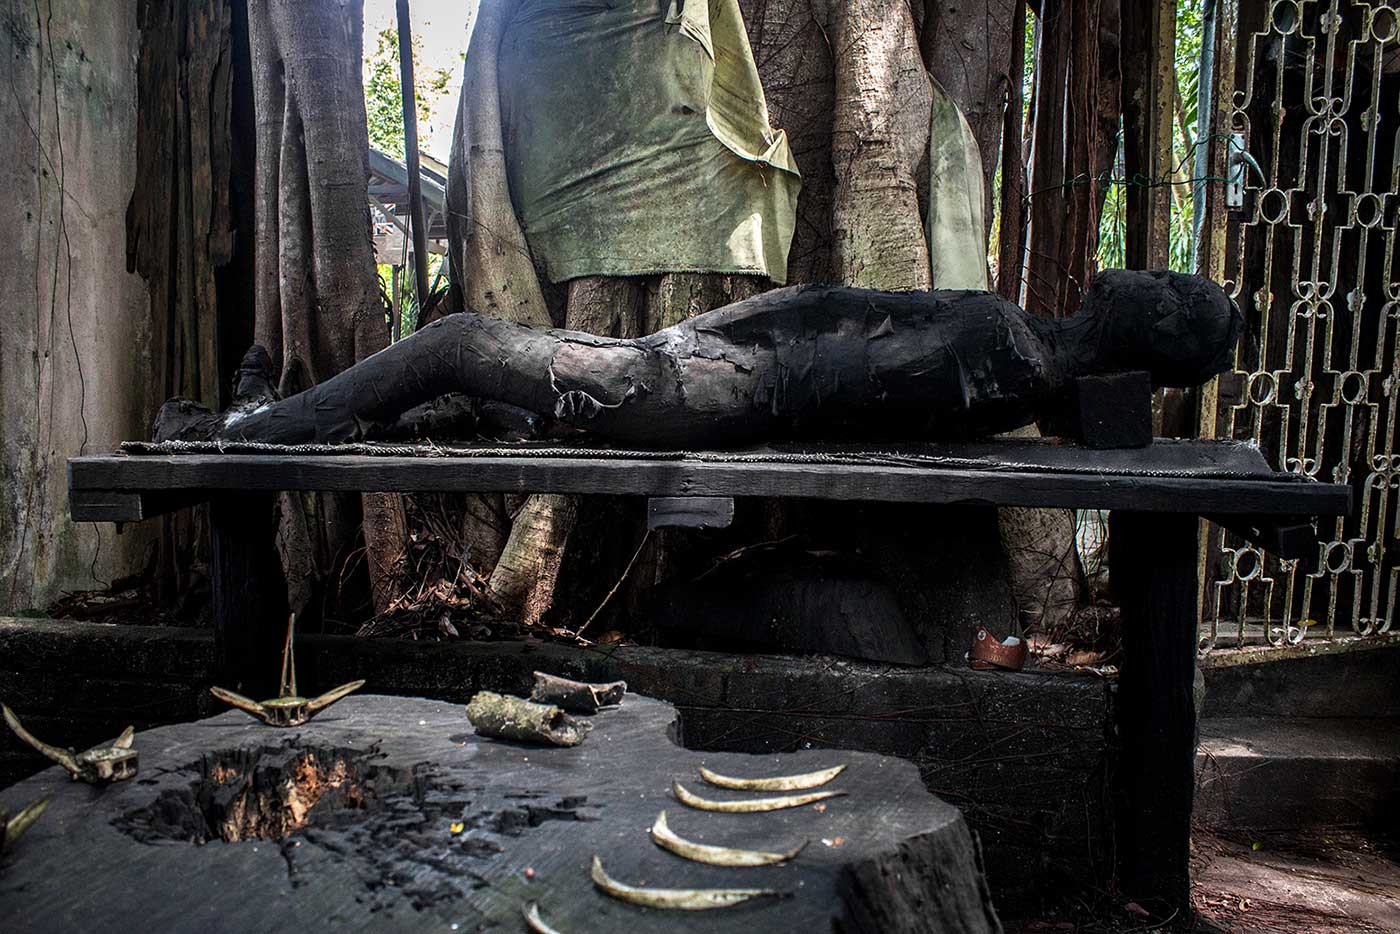 A model of a charred corpse illustrates one exhibit detailing the Japanese Occupation of Penang.